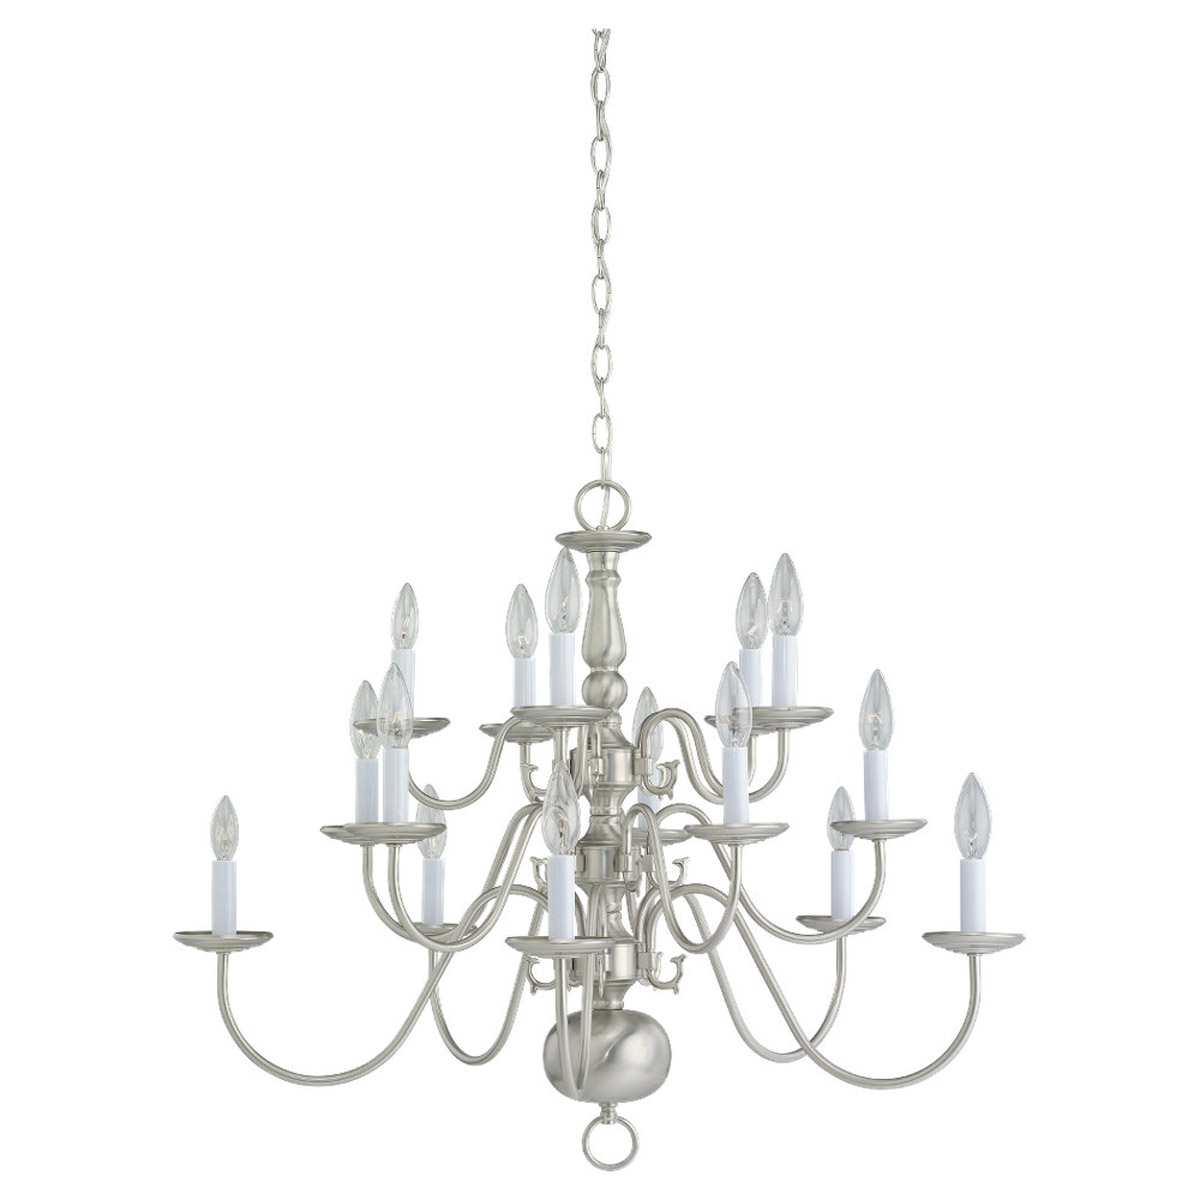 Sea Gull Lighting Traditional 15 Light Chandelier in Brushed Nickel 3414-962 photo